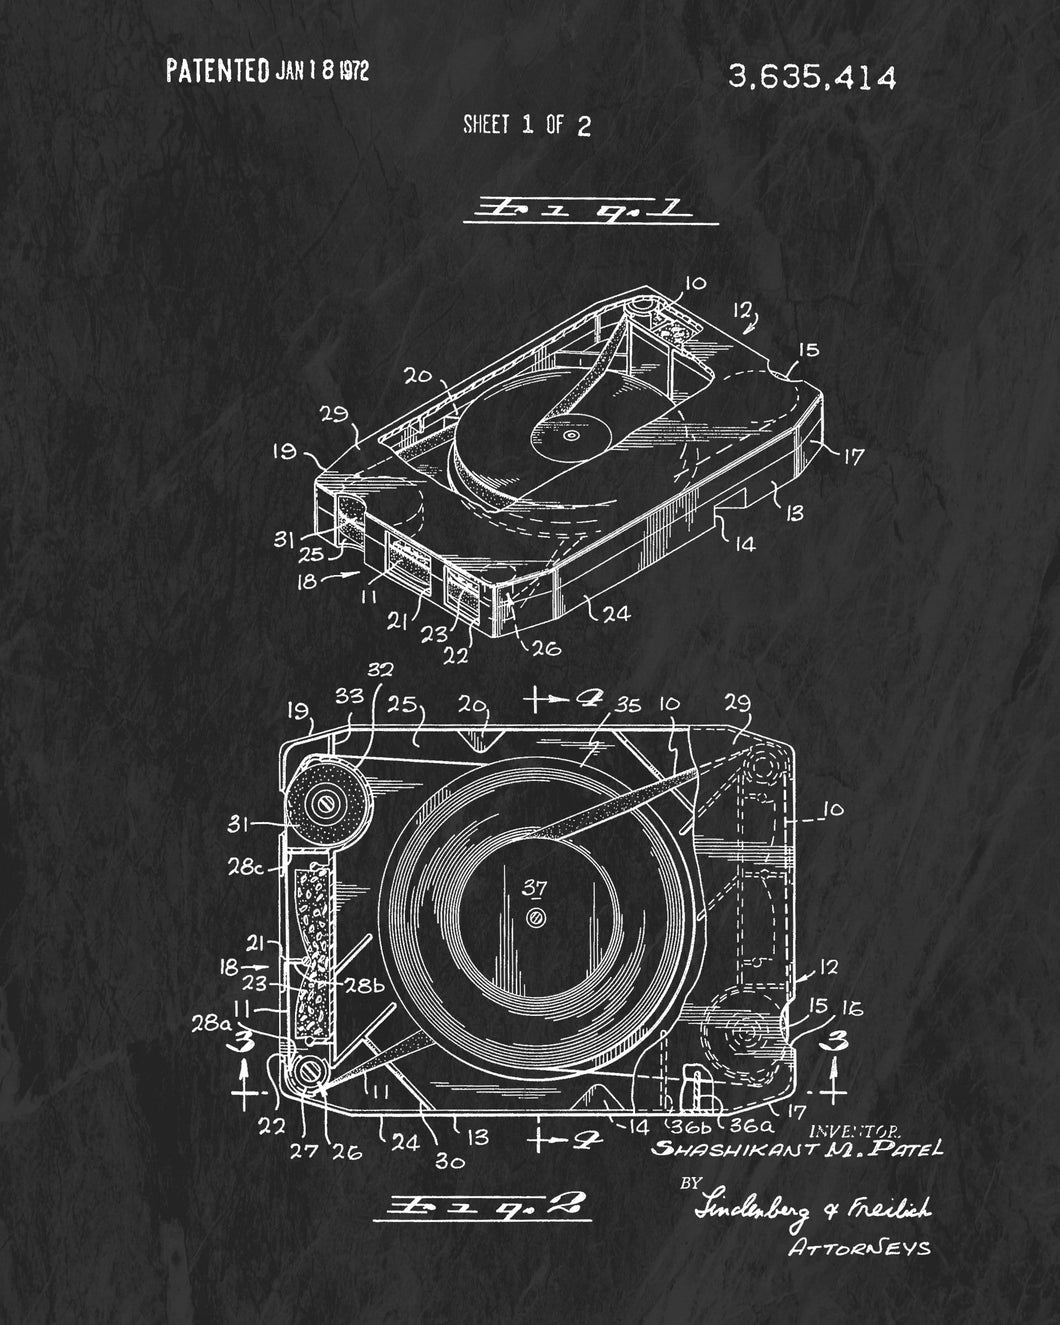 1972 8-Track Tape Patent Art Print (Original Title)